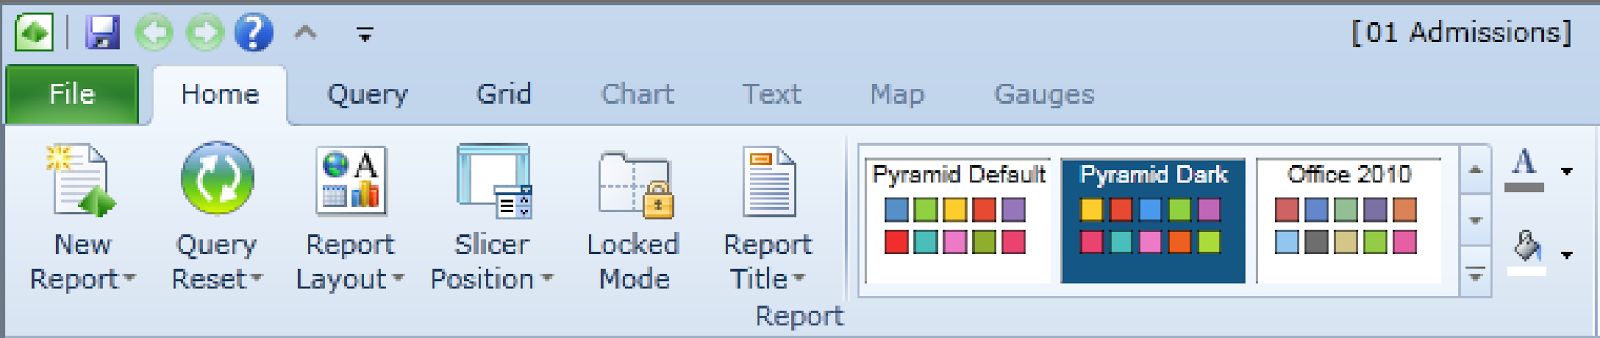 screenshot of File menu option in Excel